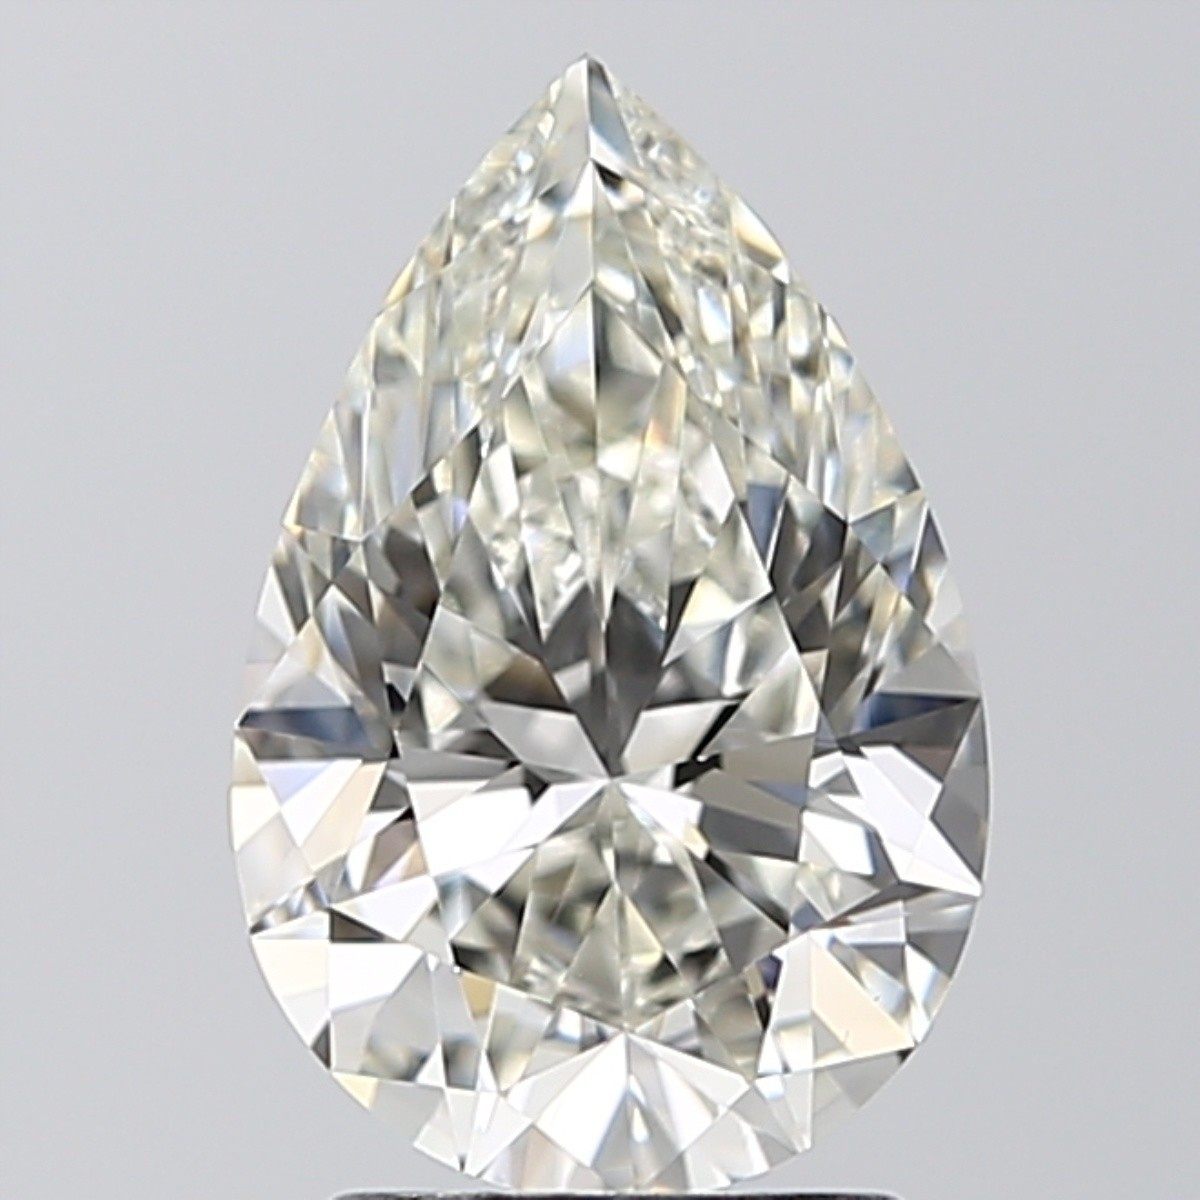 2.01 Carat Pear Diamond (J/VS1)